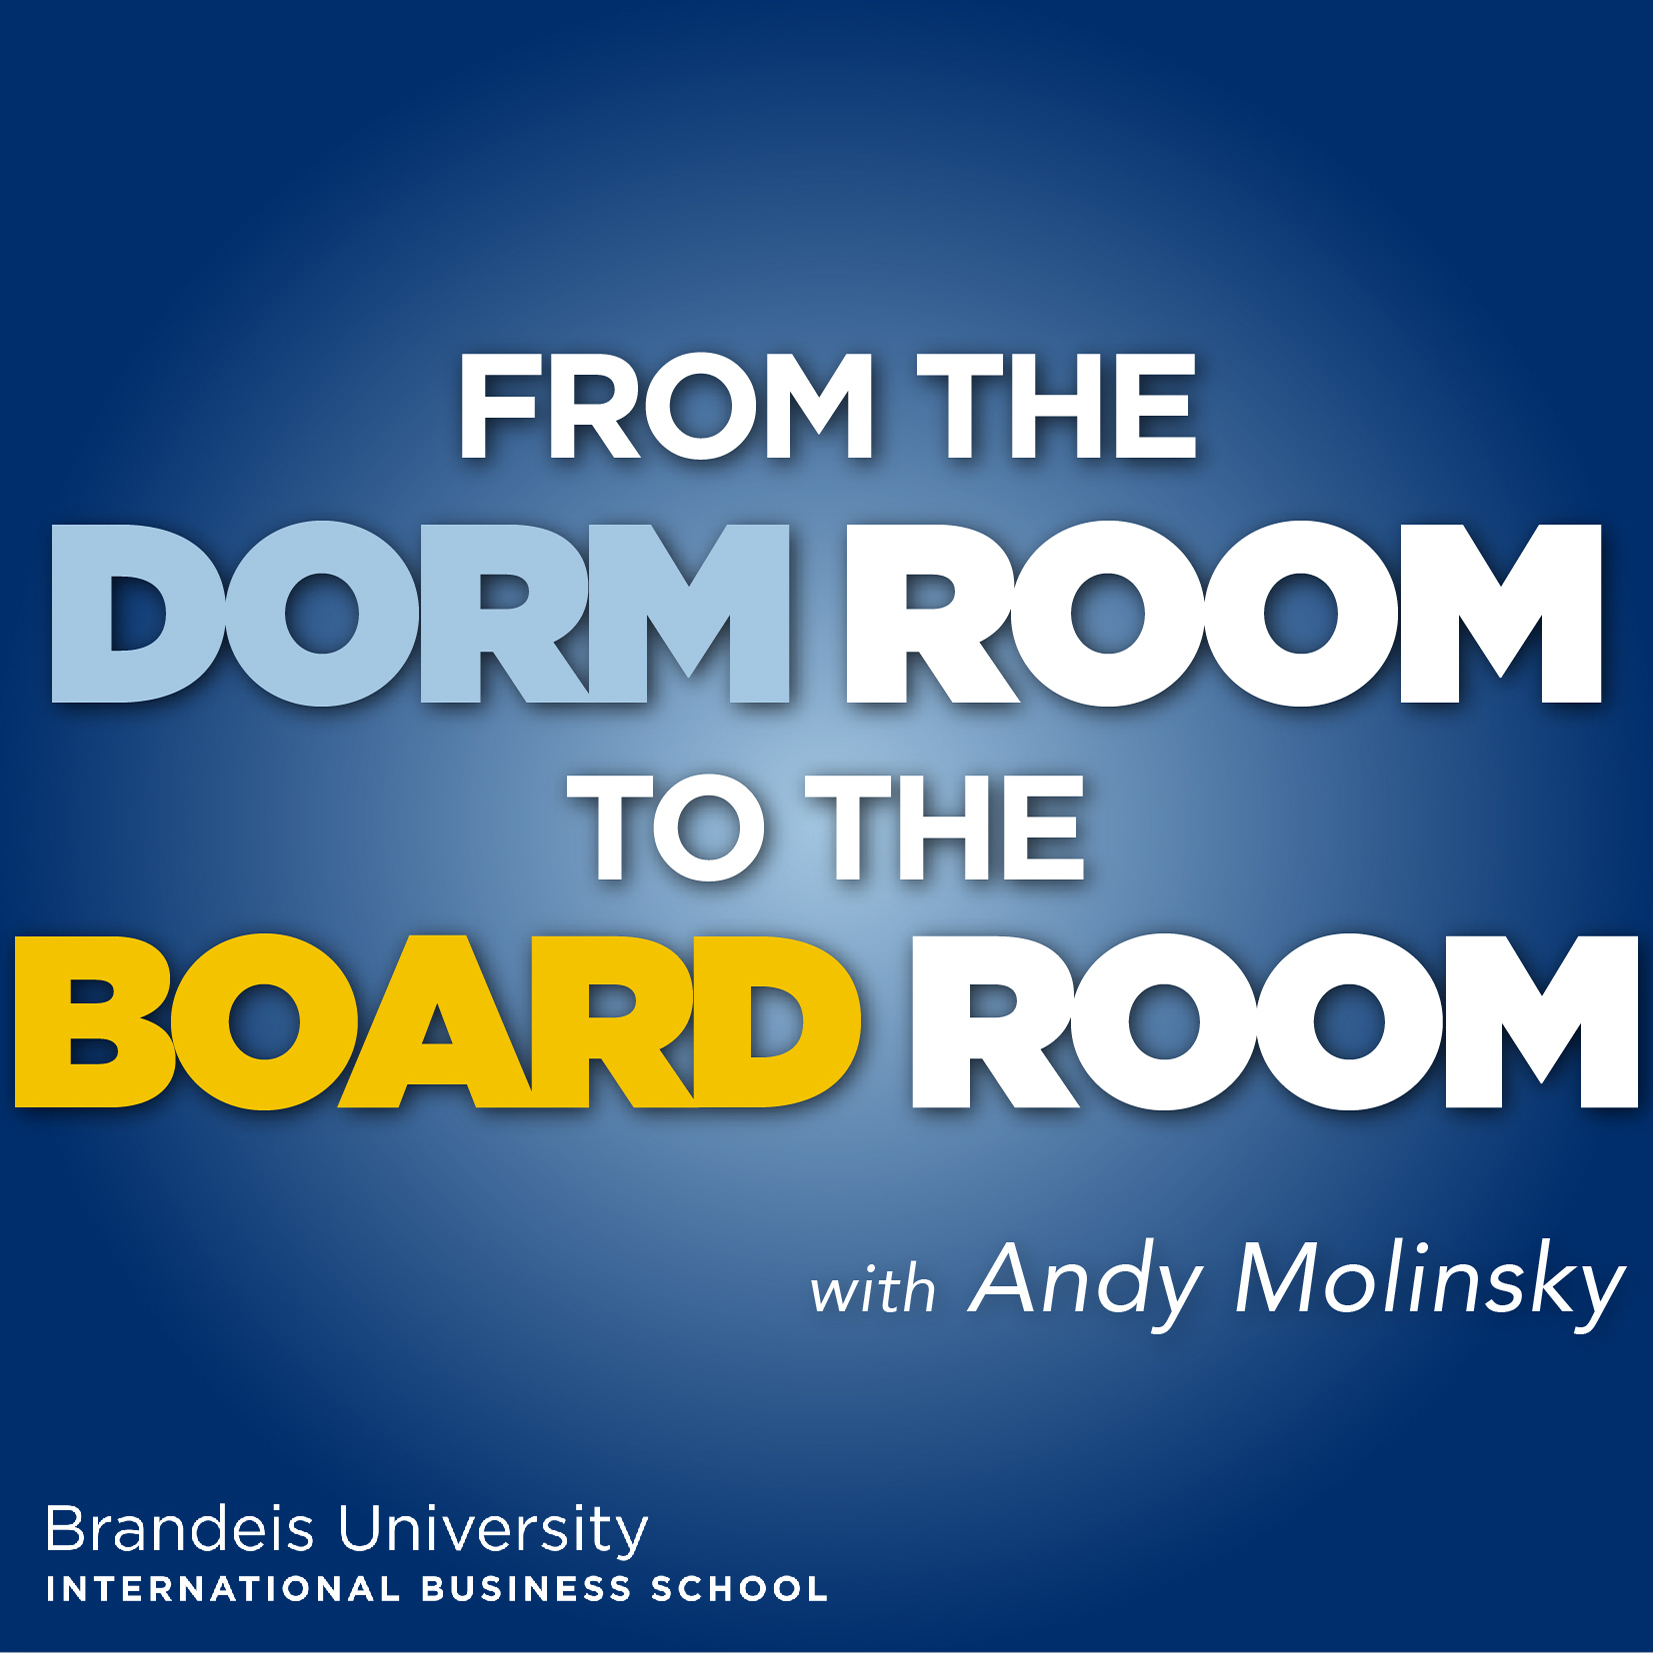 Artwork for podcast From the Dorm Room to the Board Room